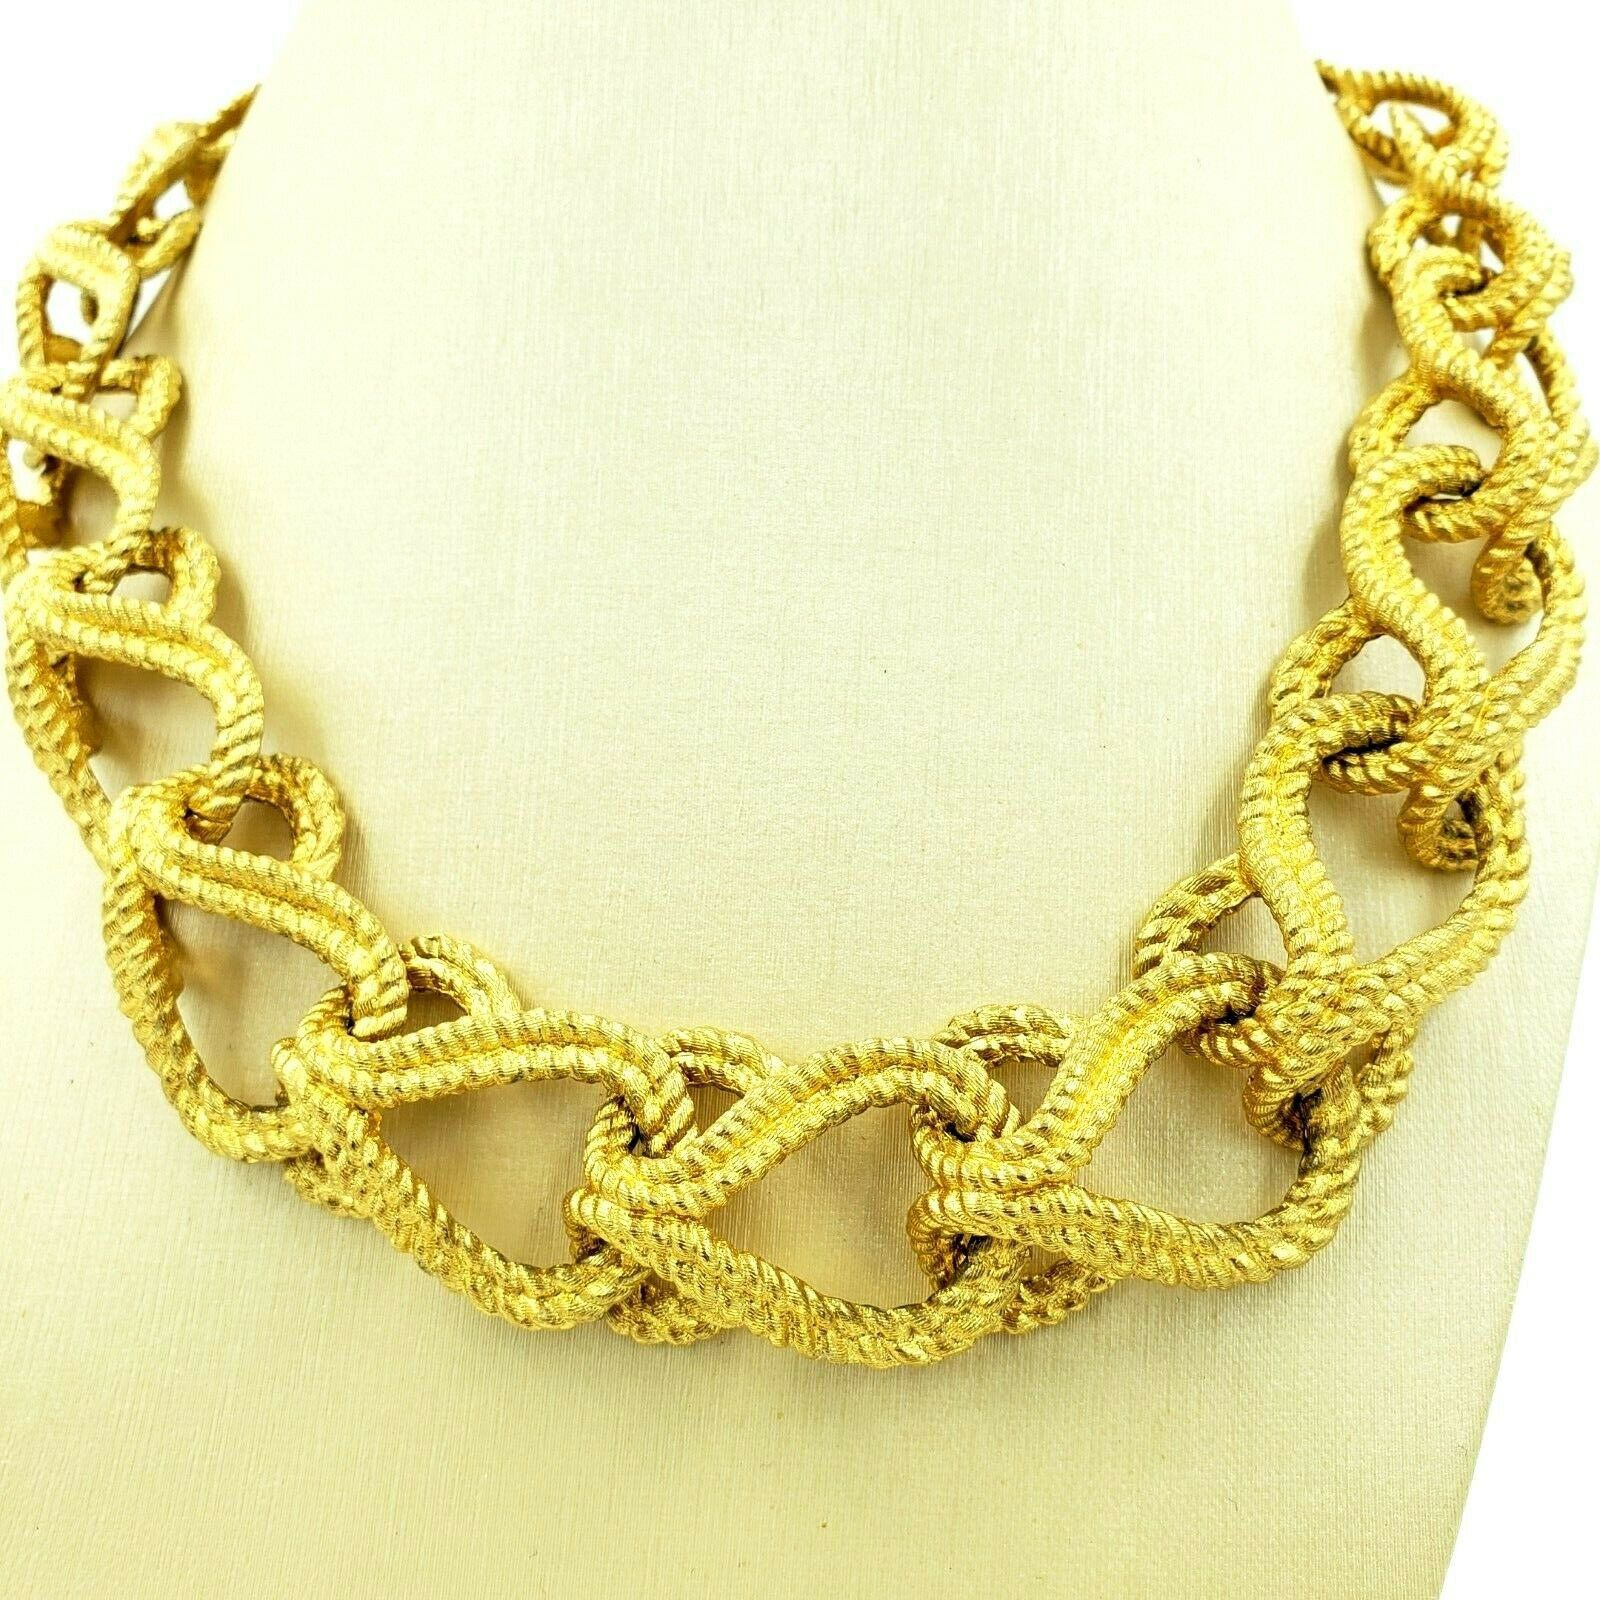 Givenchy Bold Gold Chain Link Necklace Adjustable 16